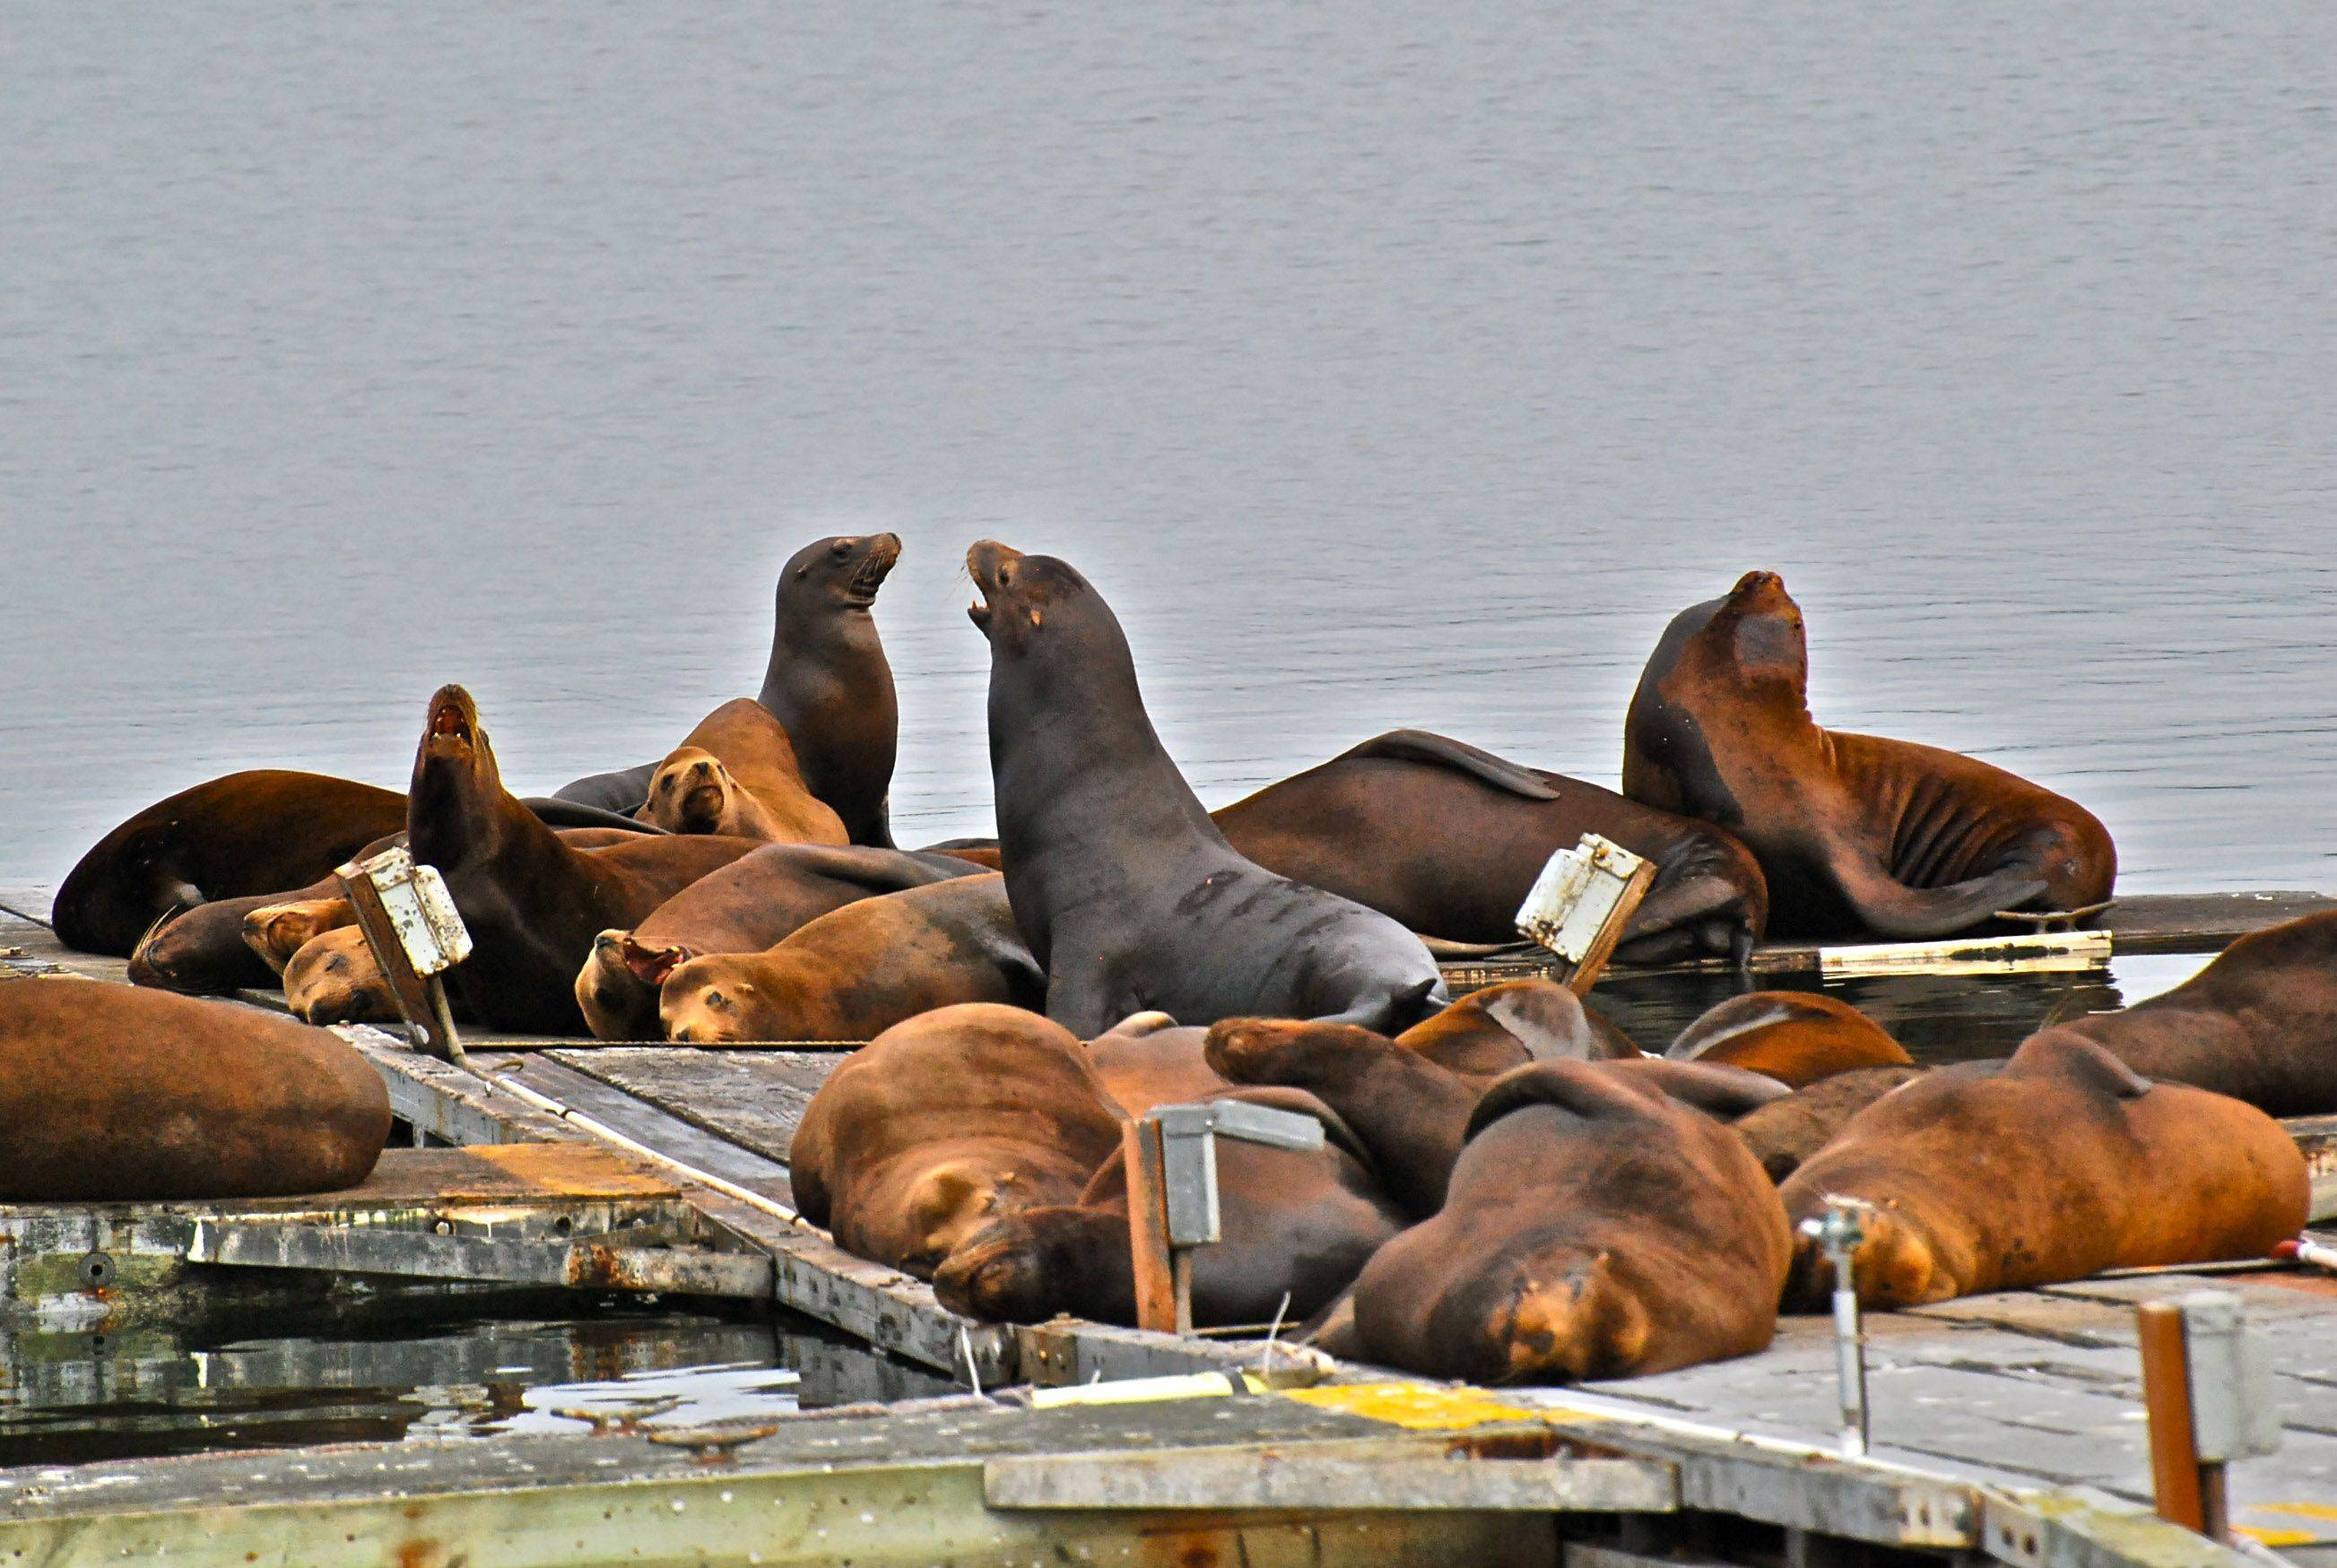 These sea lions had taken over a public dock in the working harbor of Crescent City, CA. The marine mammal act doesn't let anyone chase them away. They made a lot of noise, but basically just laid around.